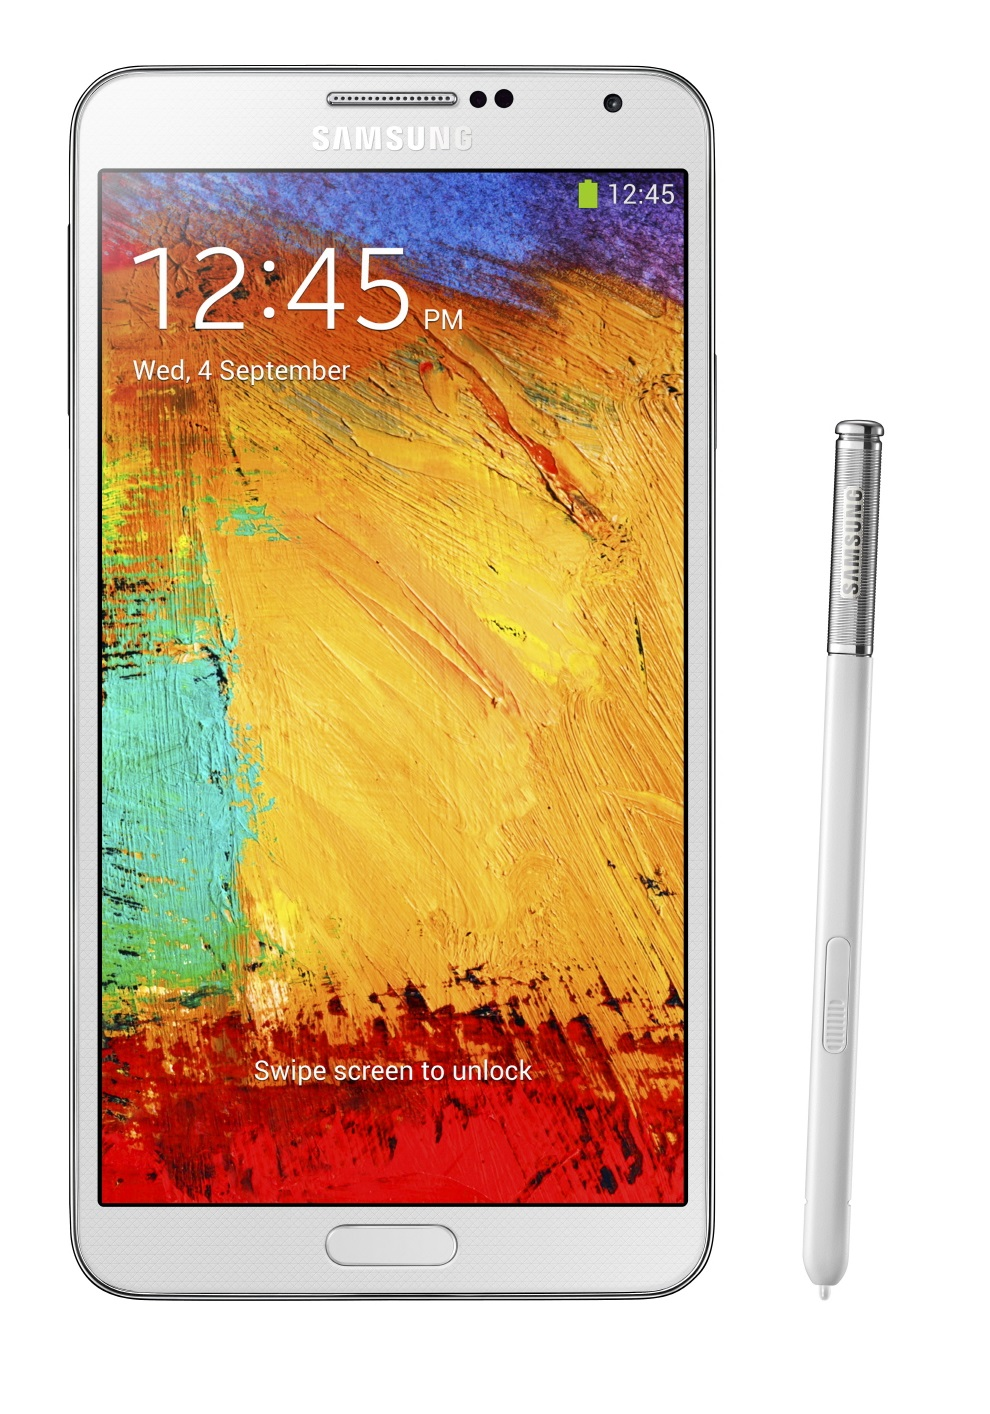 Samsung Galaxy Note 3 N9000 32GB Unlocked GSM Android Cell Phone - White